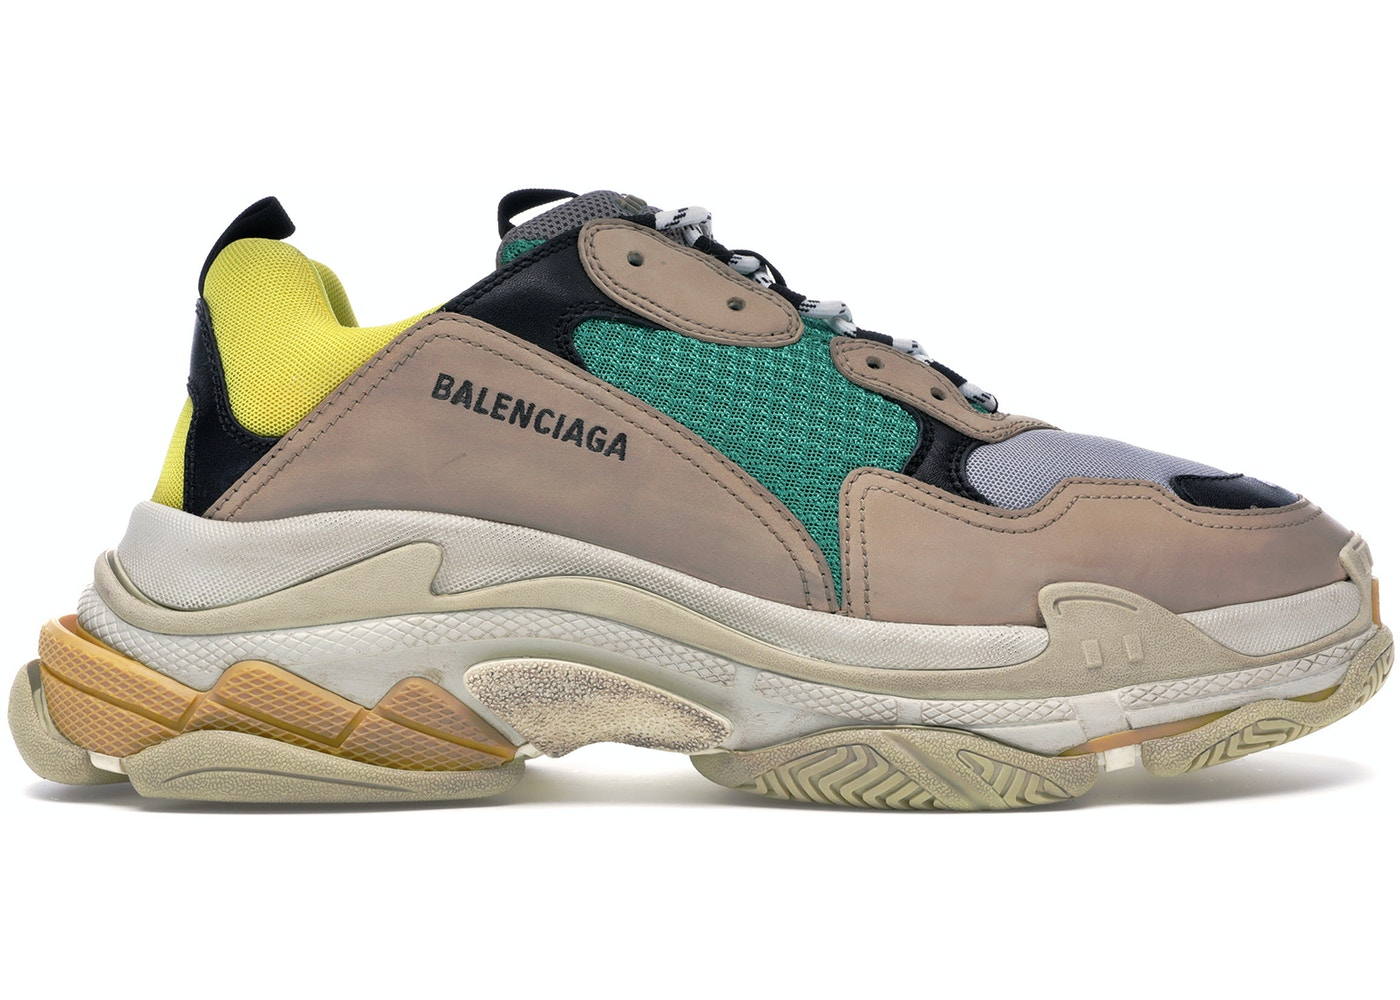 517ce2467d81d Balenciaga Triple S Beige Green Yellow (2018 Reissue) - Sneakers